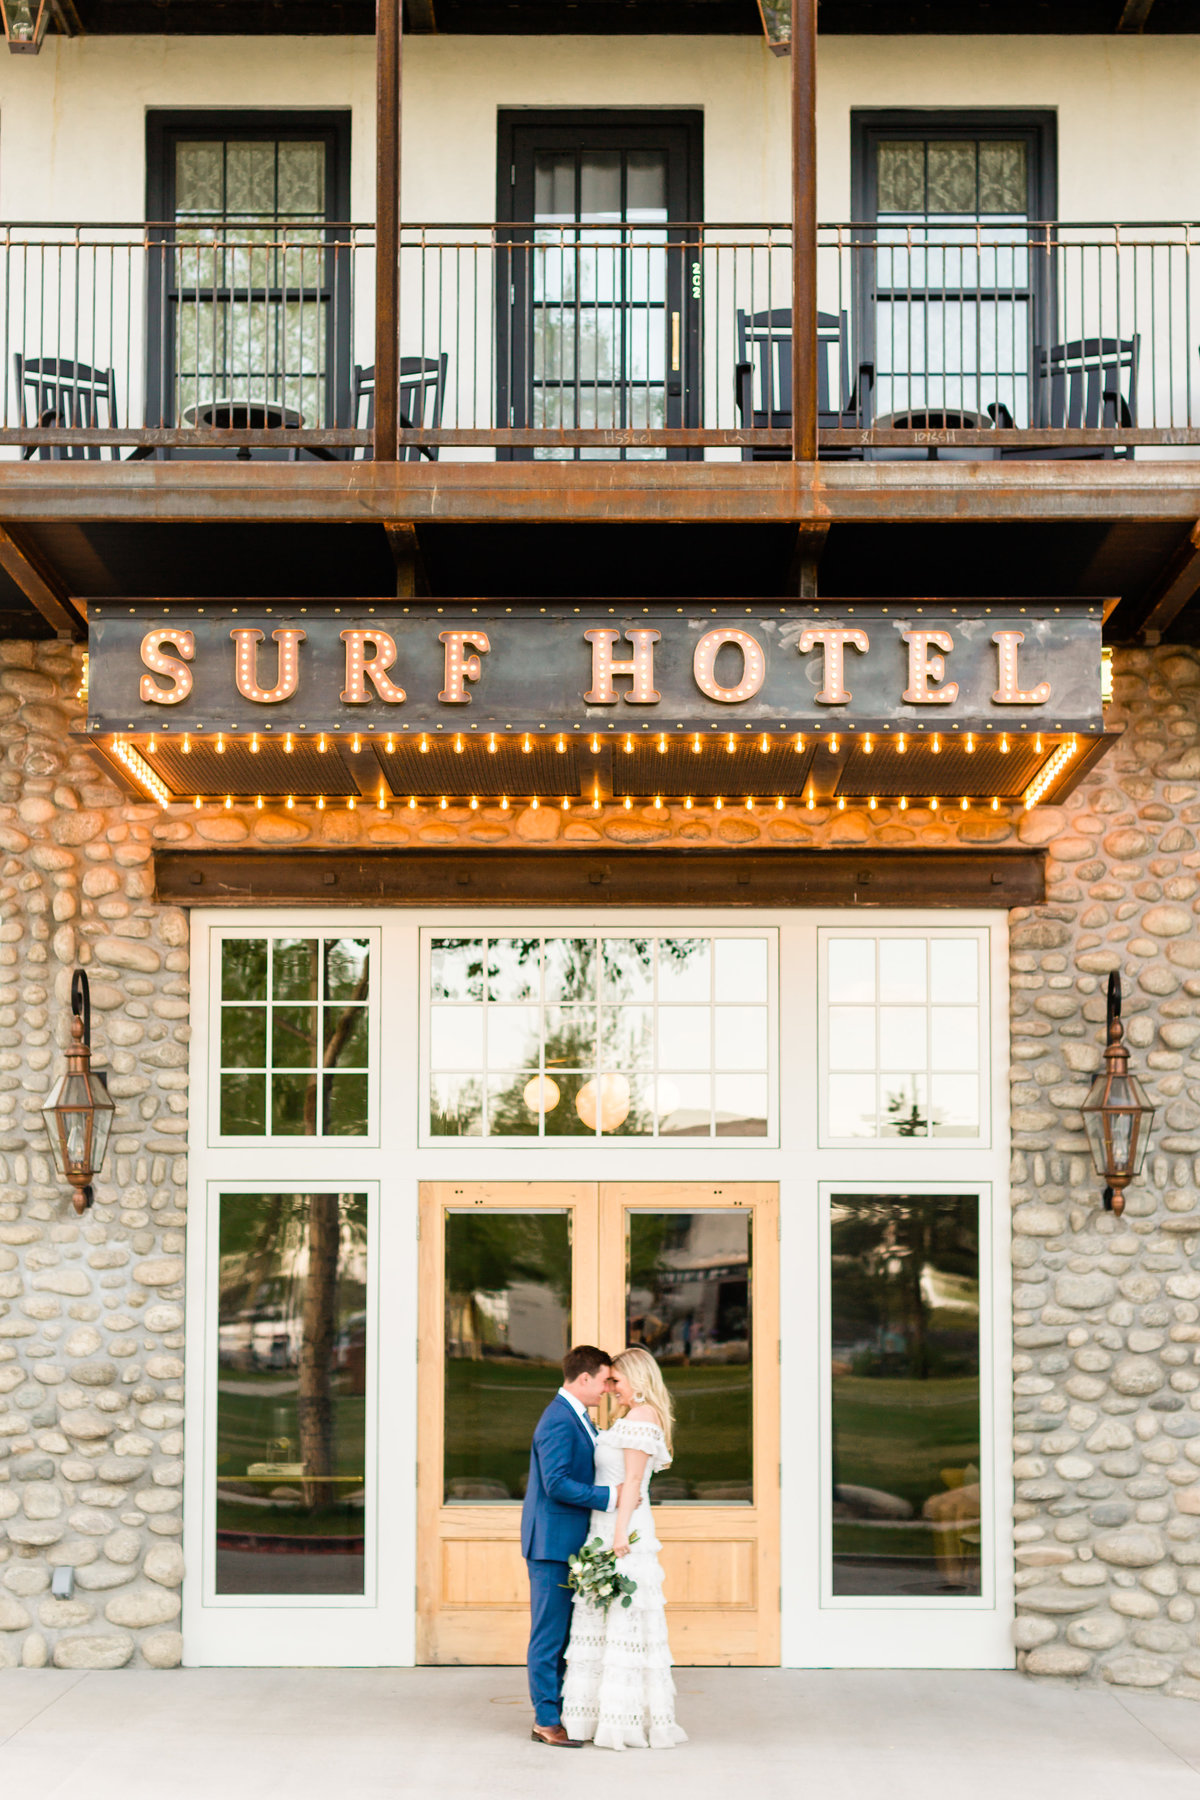 lindsey-taylor-photography-surf-hotel-buena-vista-colorado-destination-wedding-photographer48